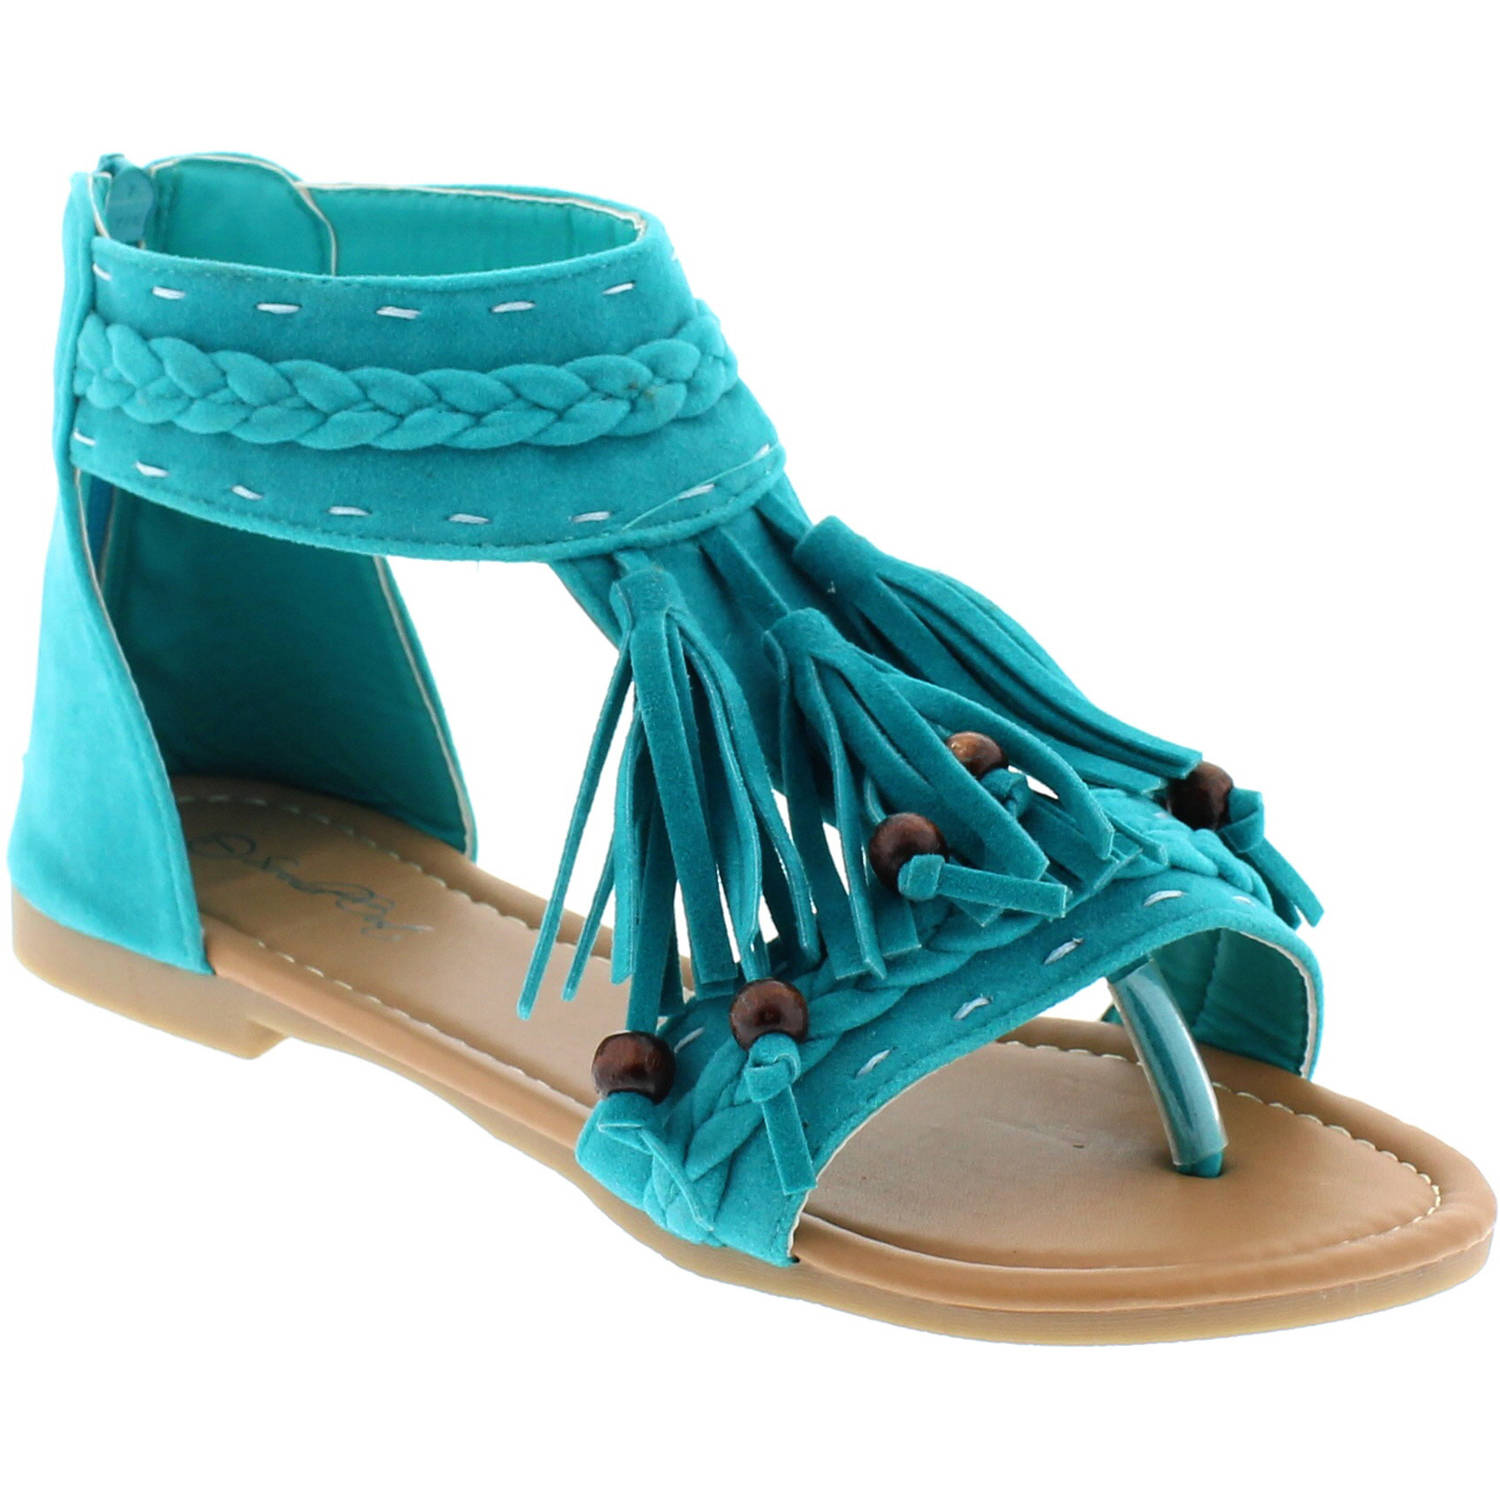 Shoes of Soul Women's Fringe Comfort Sandal